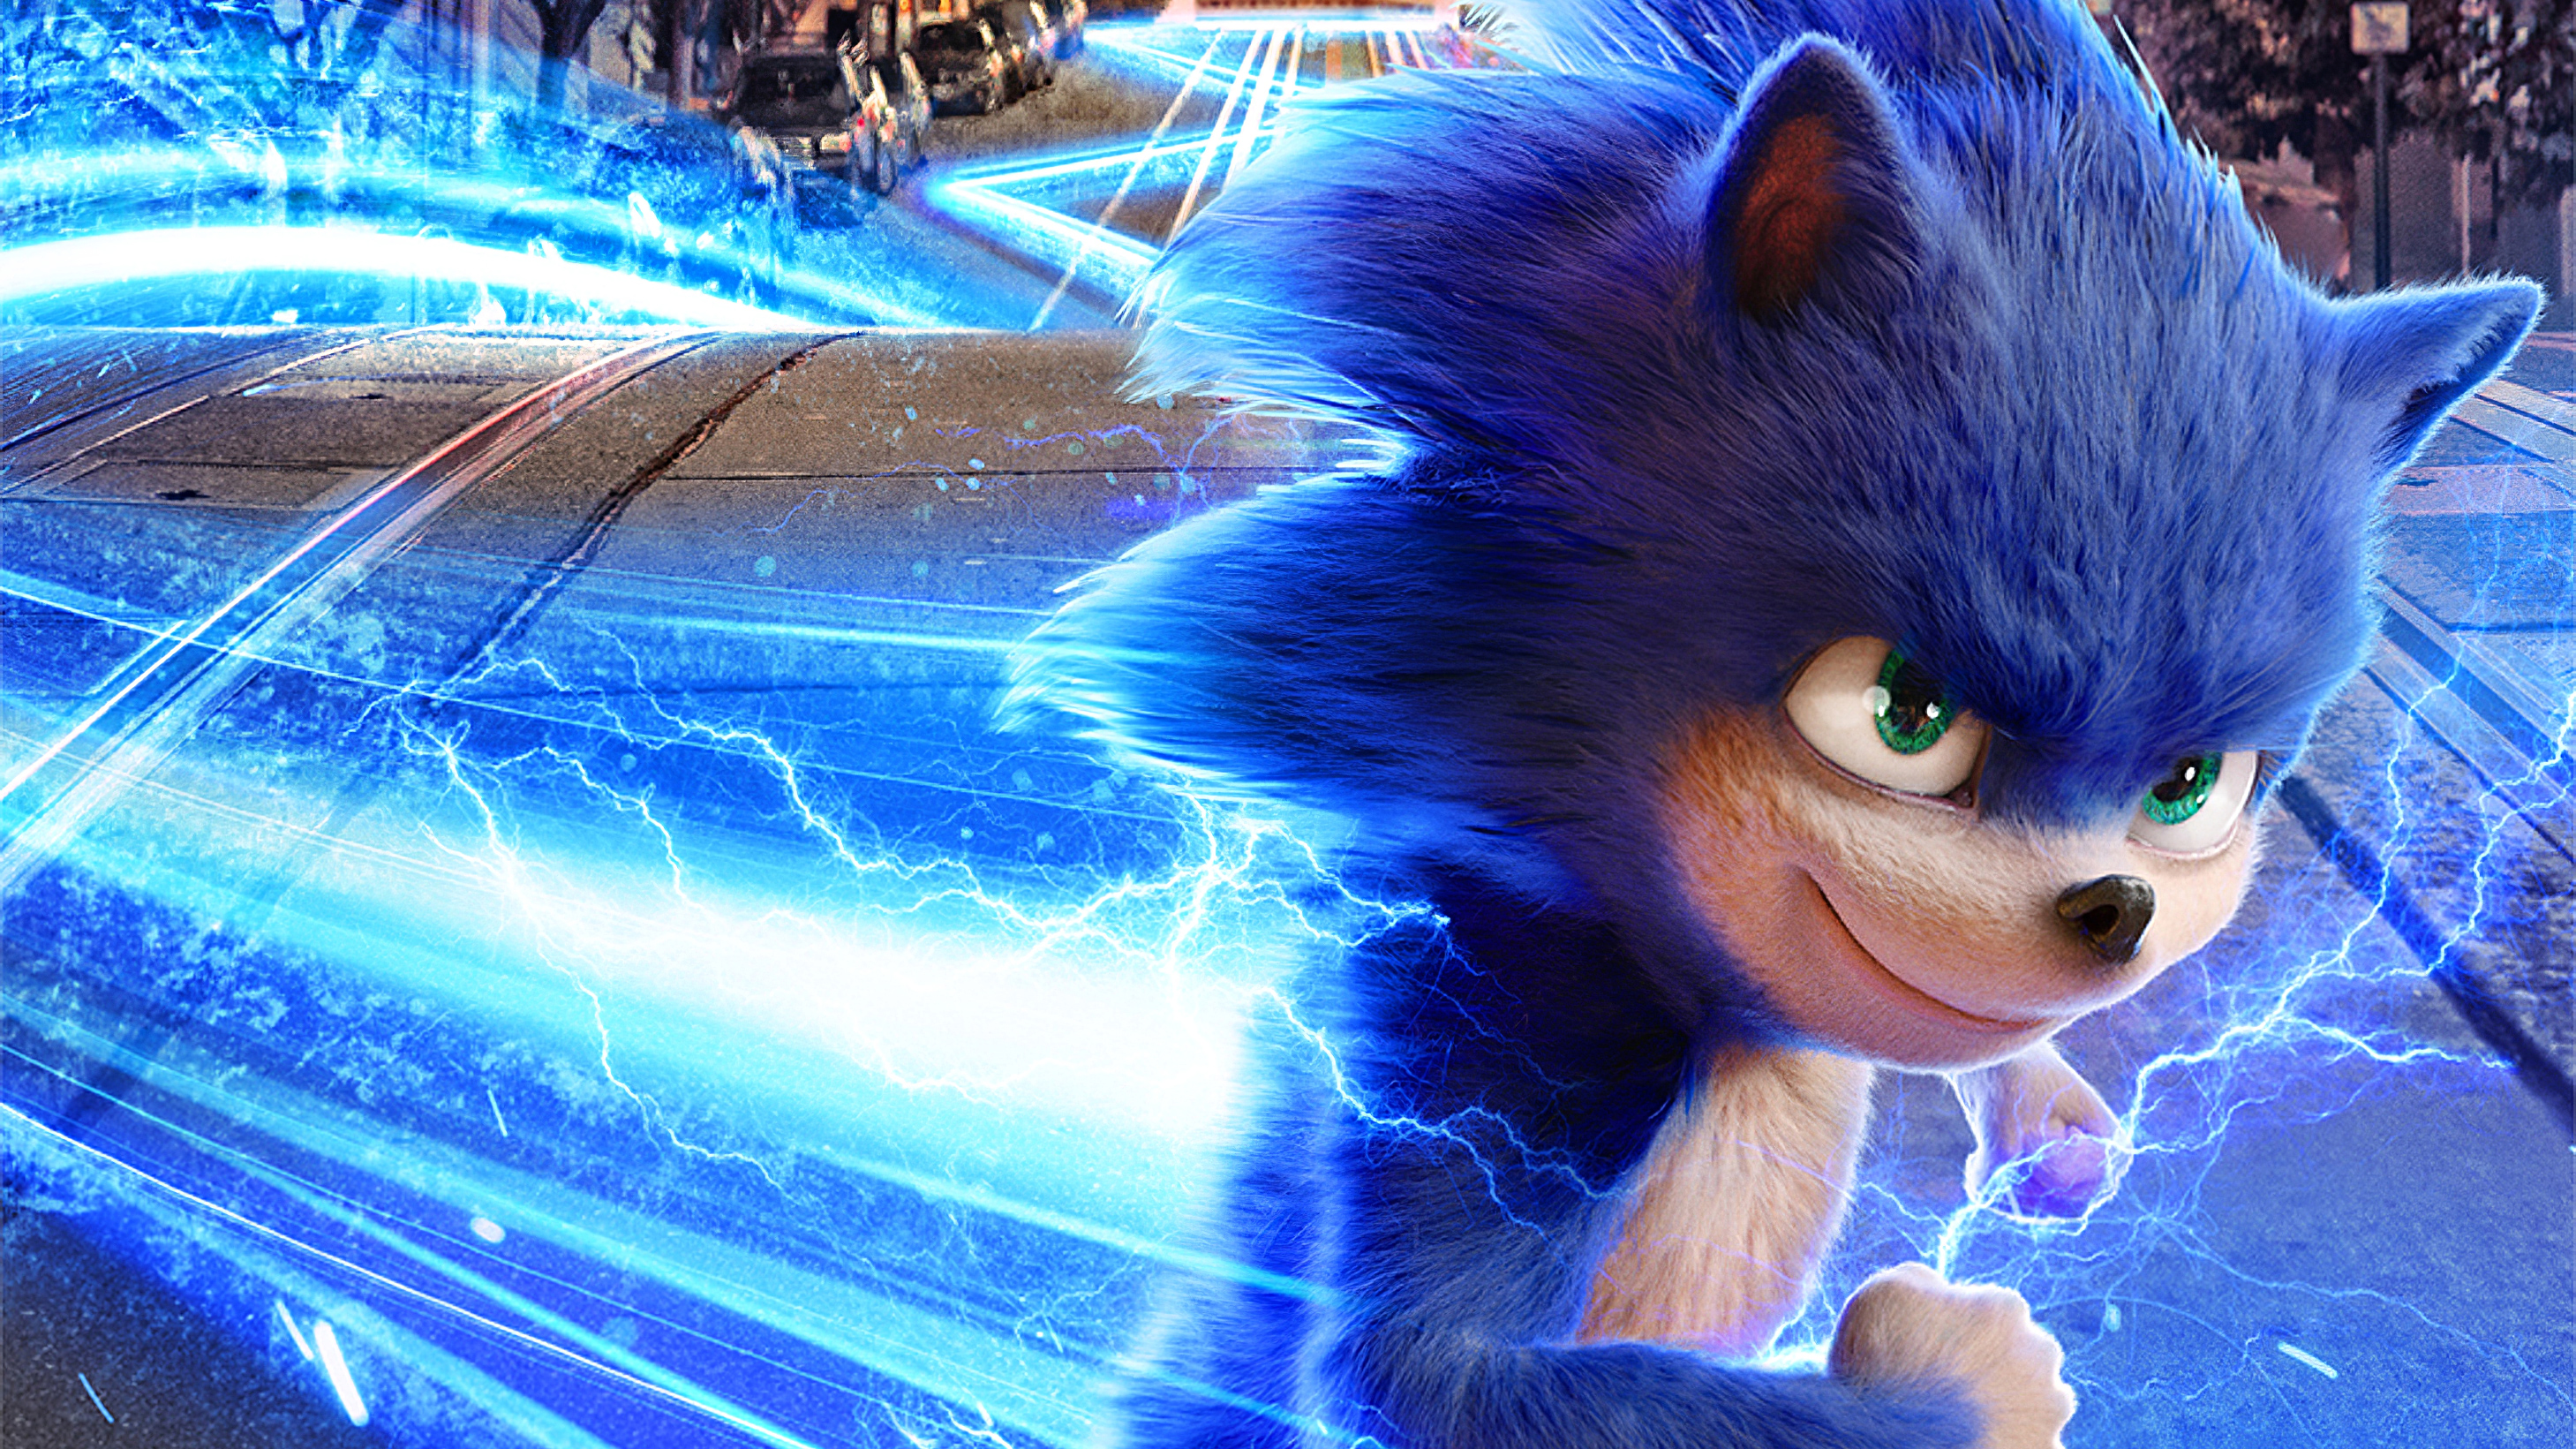 Movie Sonic The Hedgehog 2020 Hd Movies 4k Wallpapers Images Backgrounds Photos And Pictures